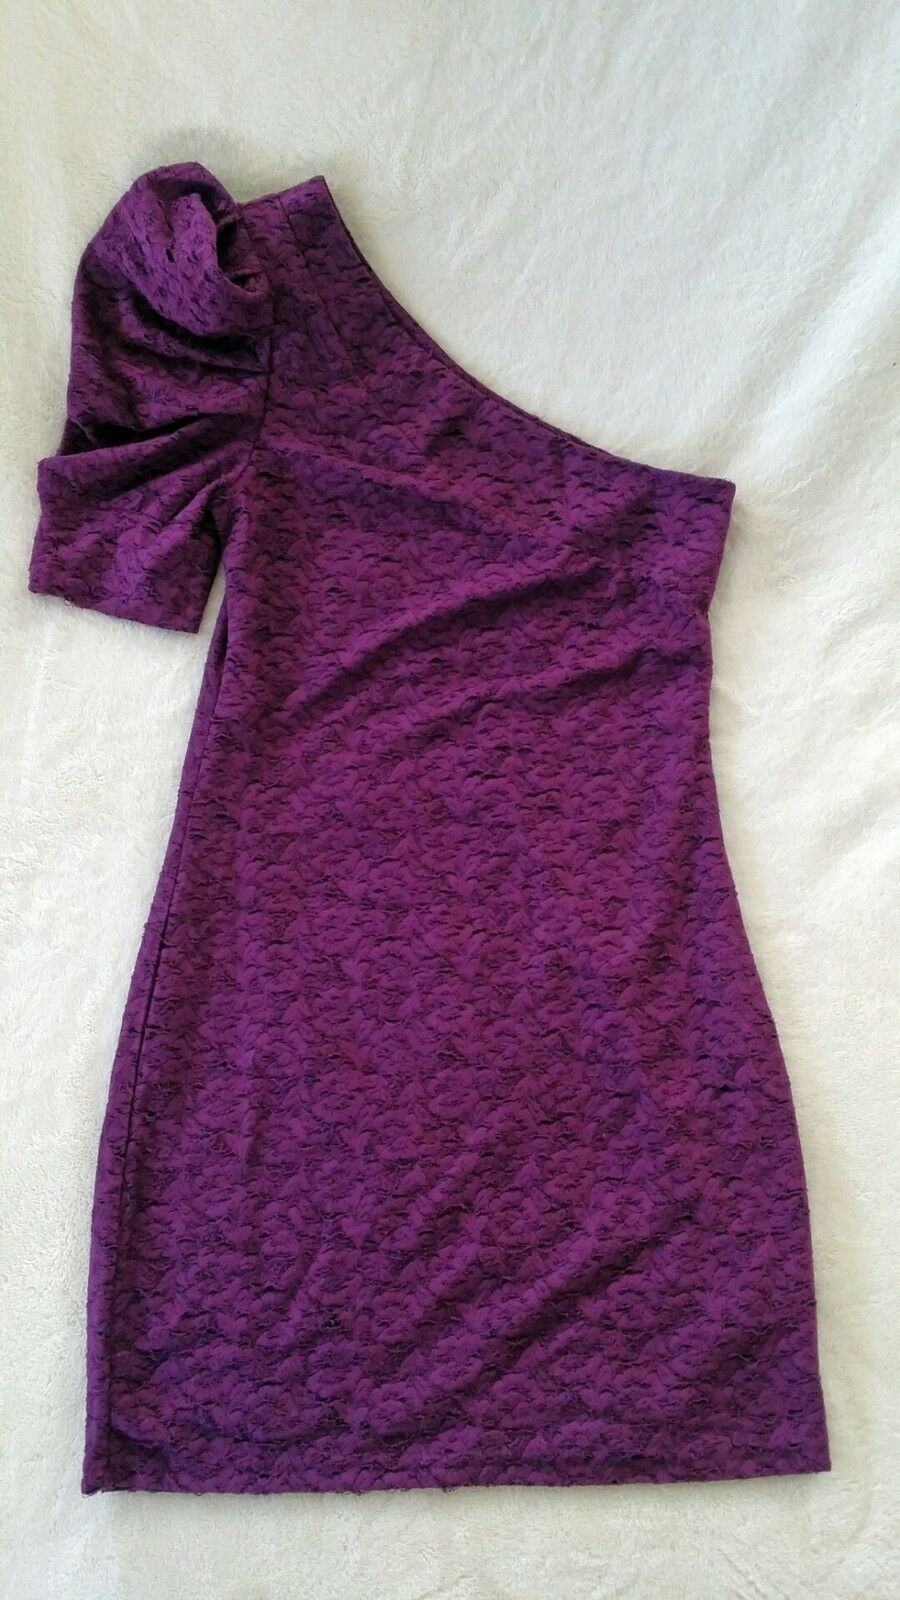 NWT Forever 21 Purple One Shoulder Short Puff Sleeve Floral Bodycon Lace Dress M